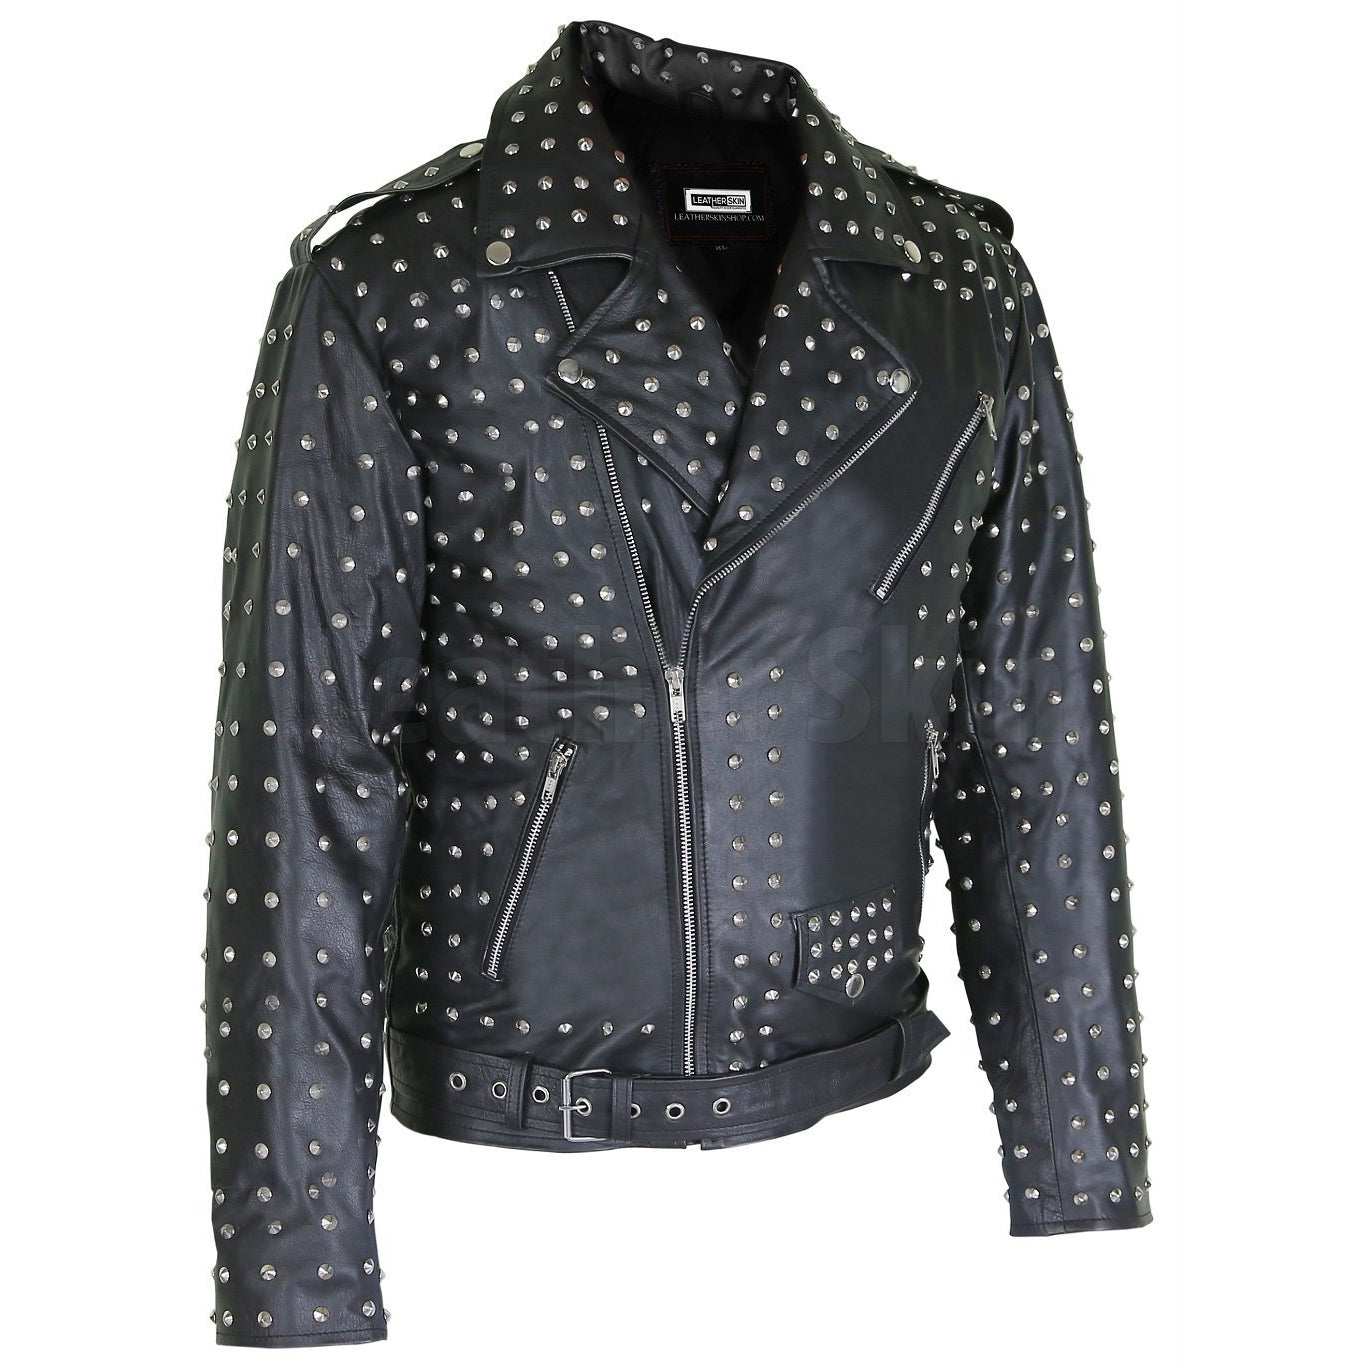 Marlon Black Brando Genuine Leather Jacket